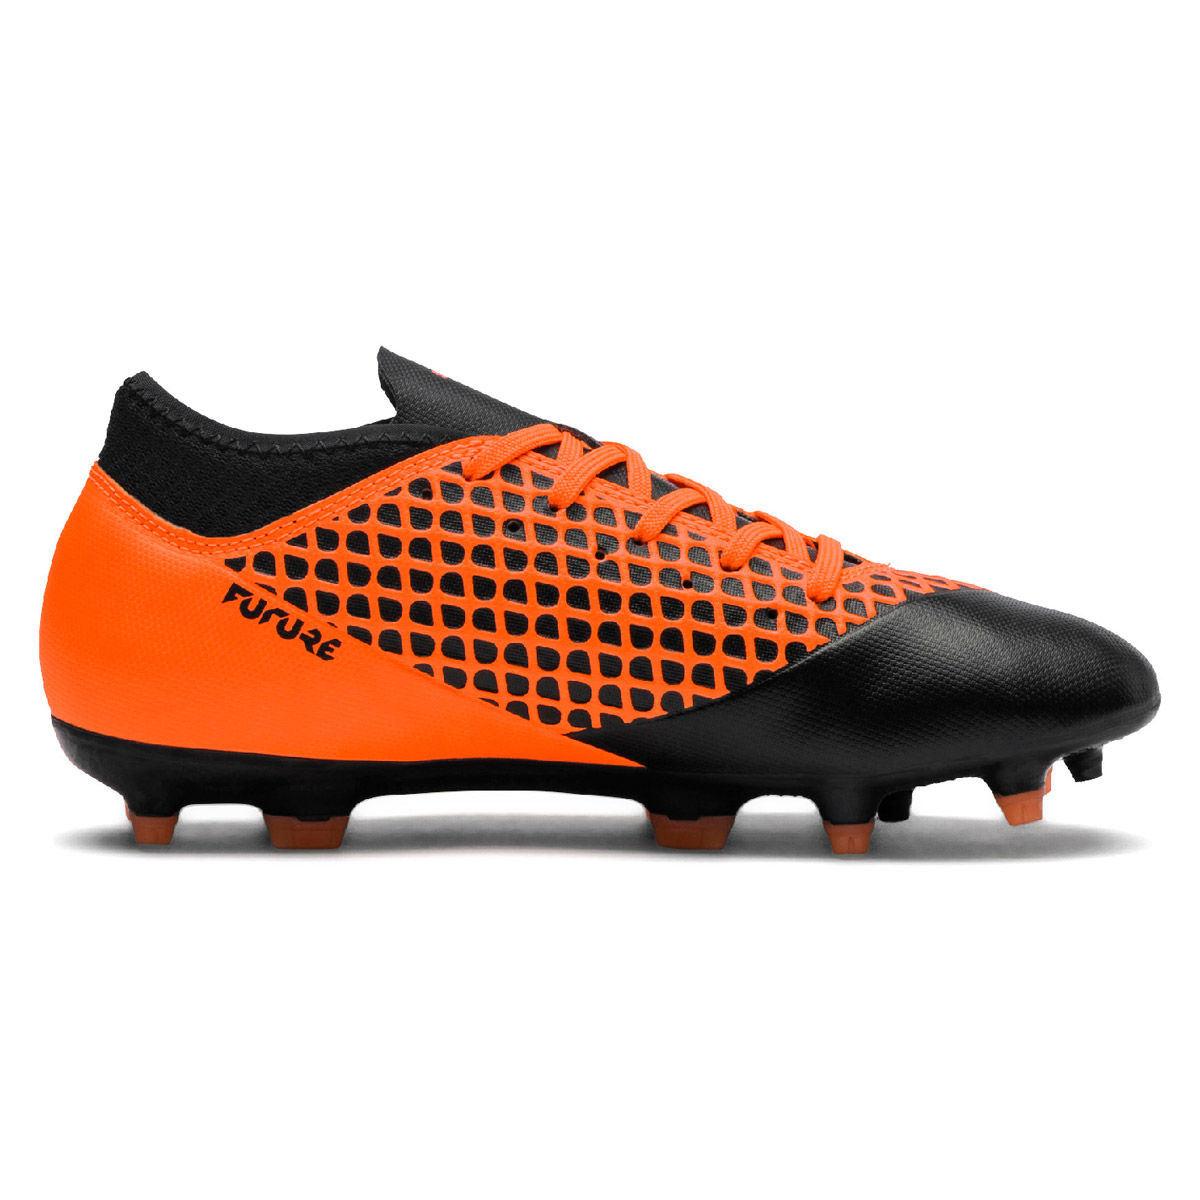 Puma Future 2.4 Kids Firm Ground Soccer Cleat